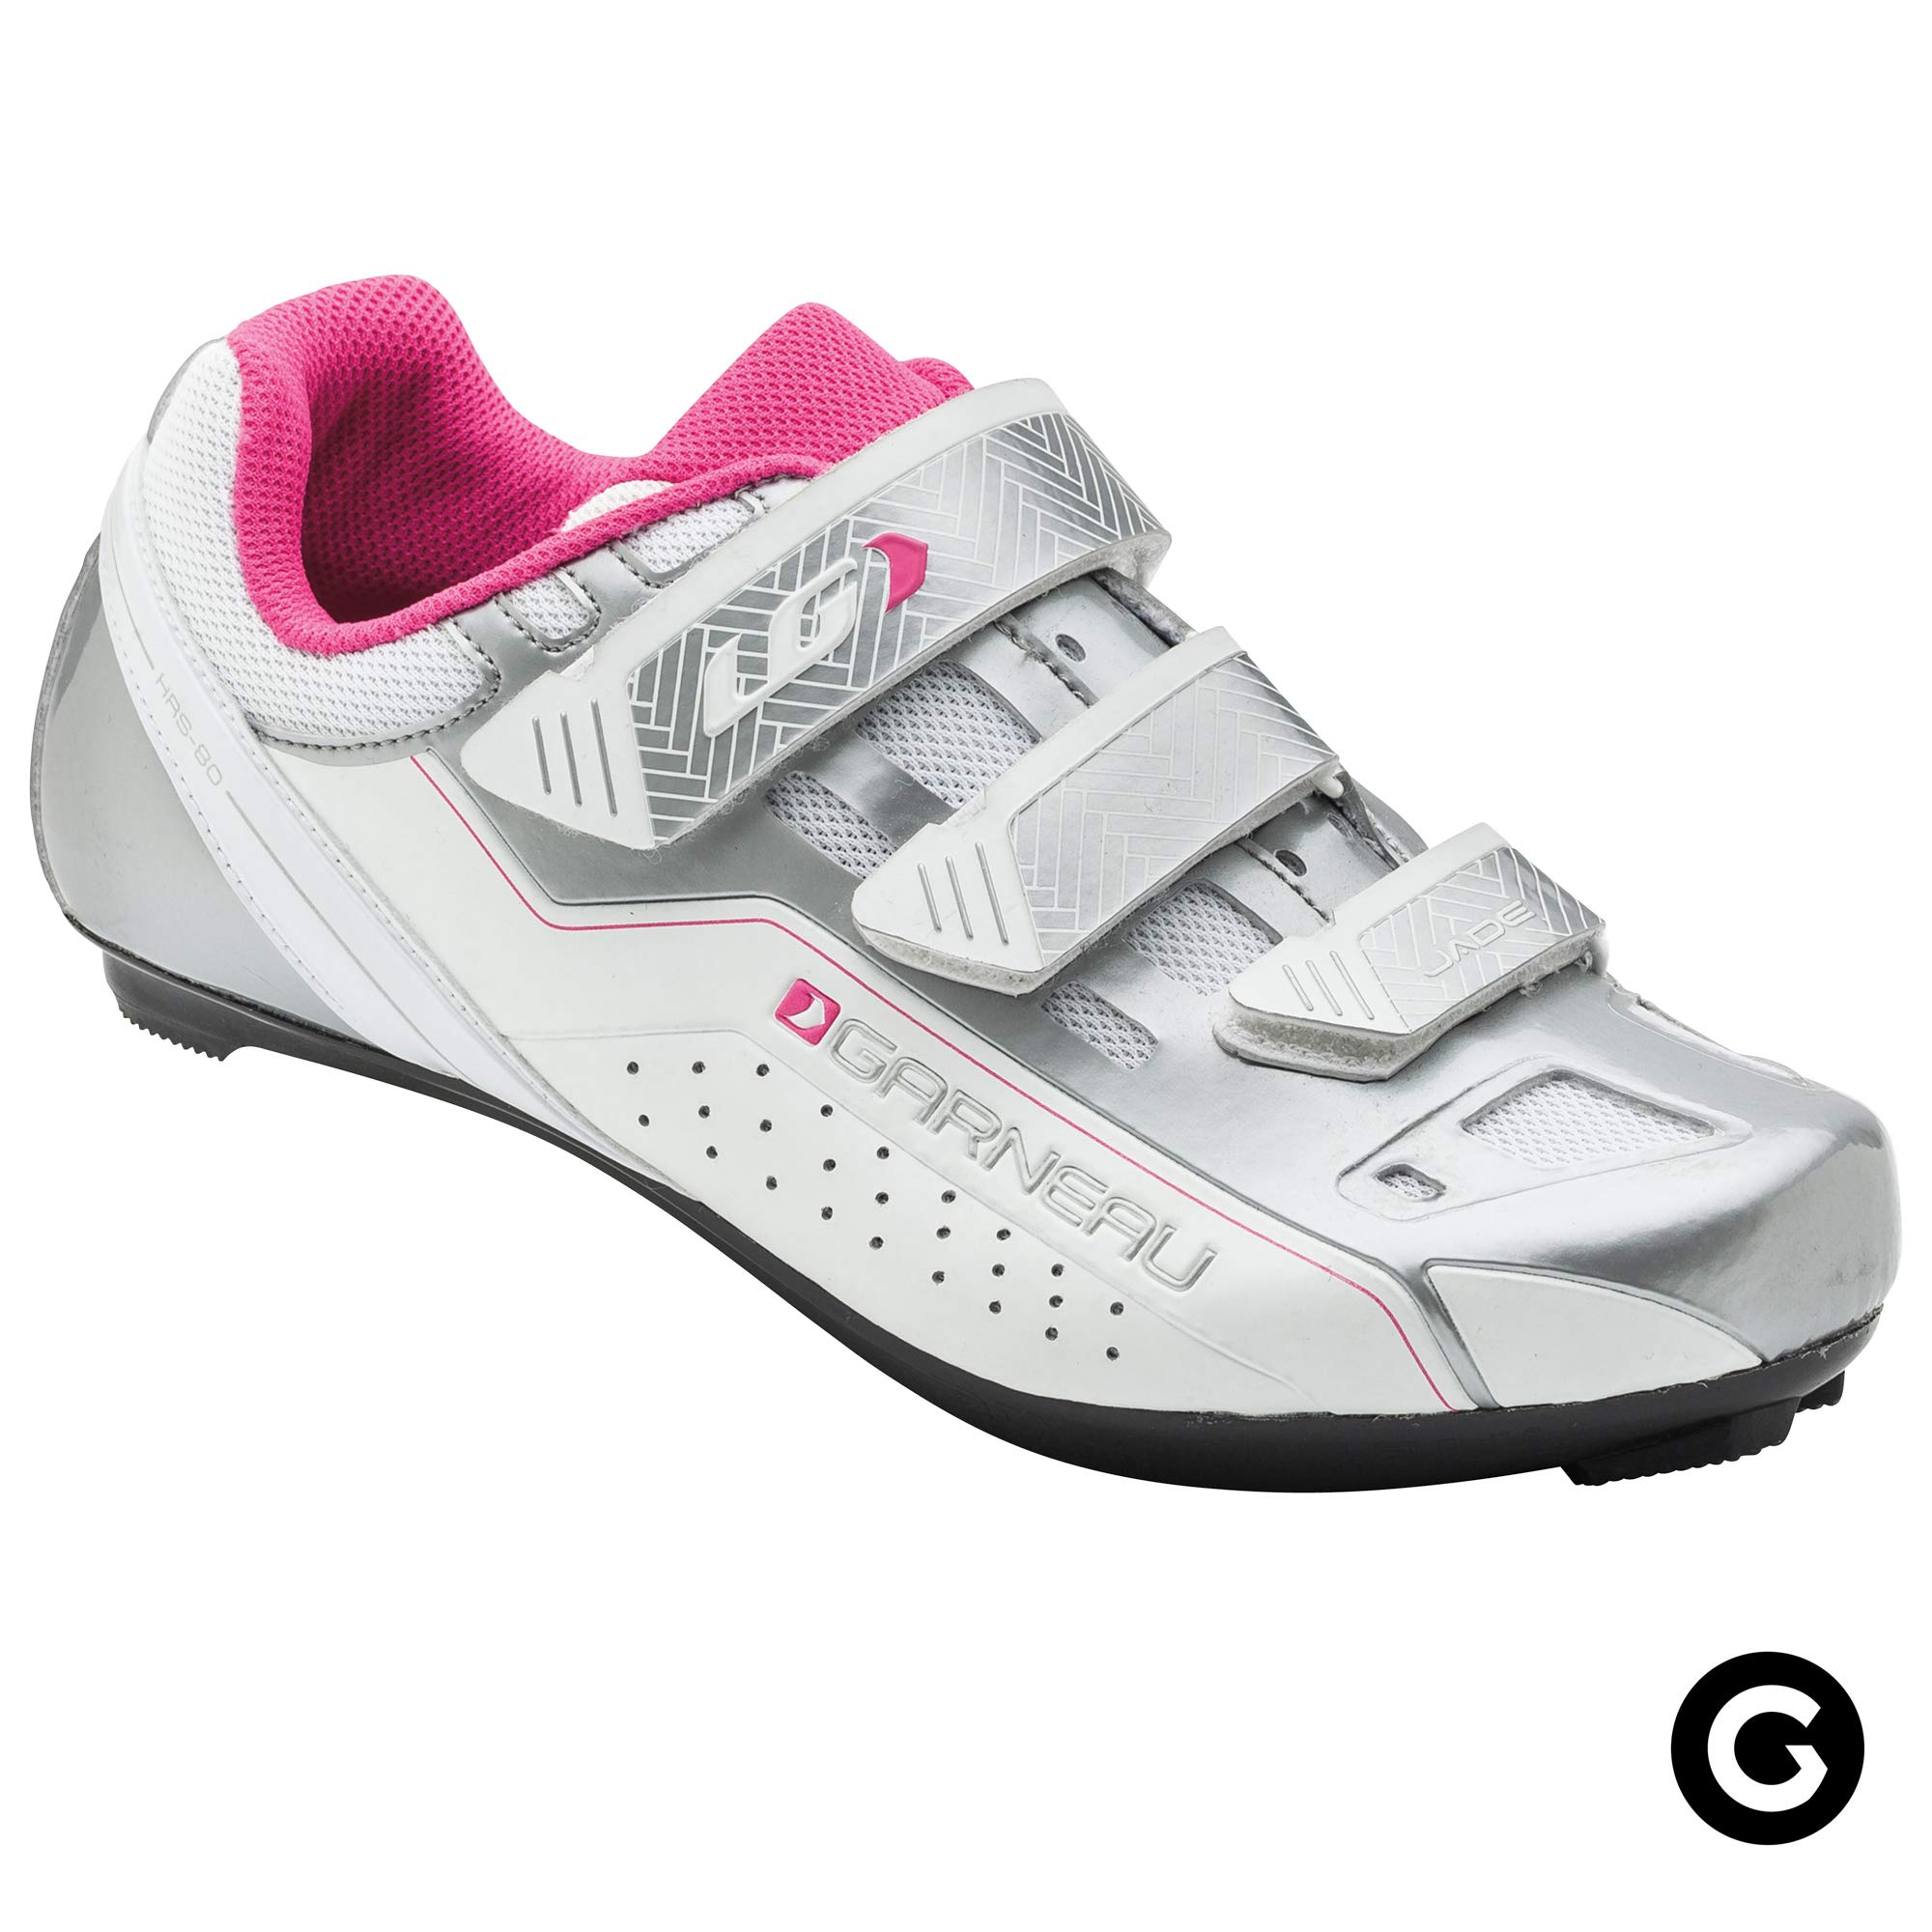 Louis Garneau Women's Jade Bike Shoes for Commuting and Indoor Cycling, Compatible with SPD, Look and All Road Pedals, Drizzle, US (6.5), EU (37) by Louis Garneau